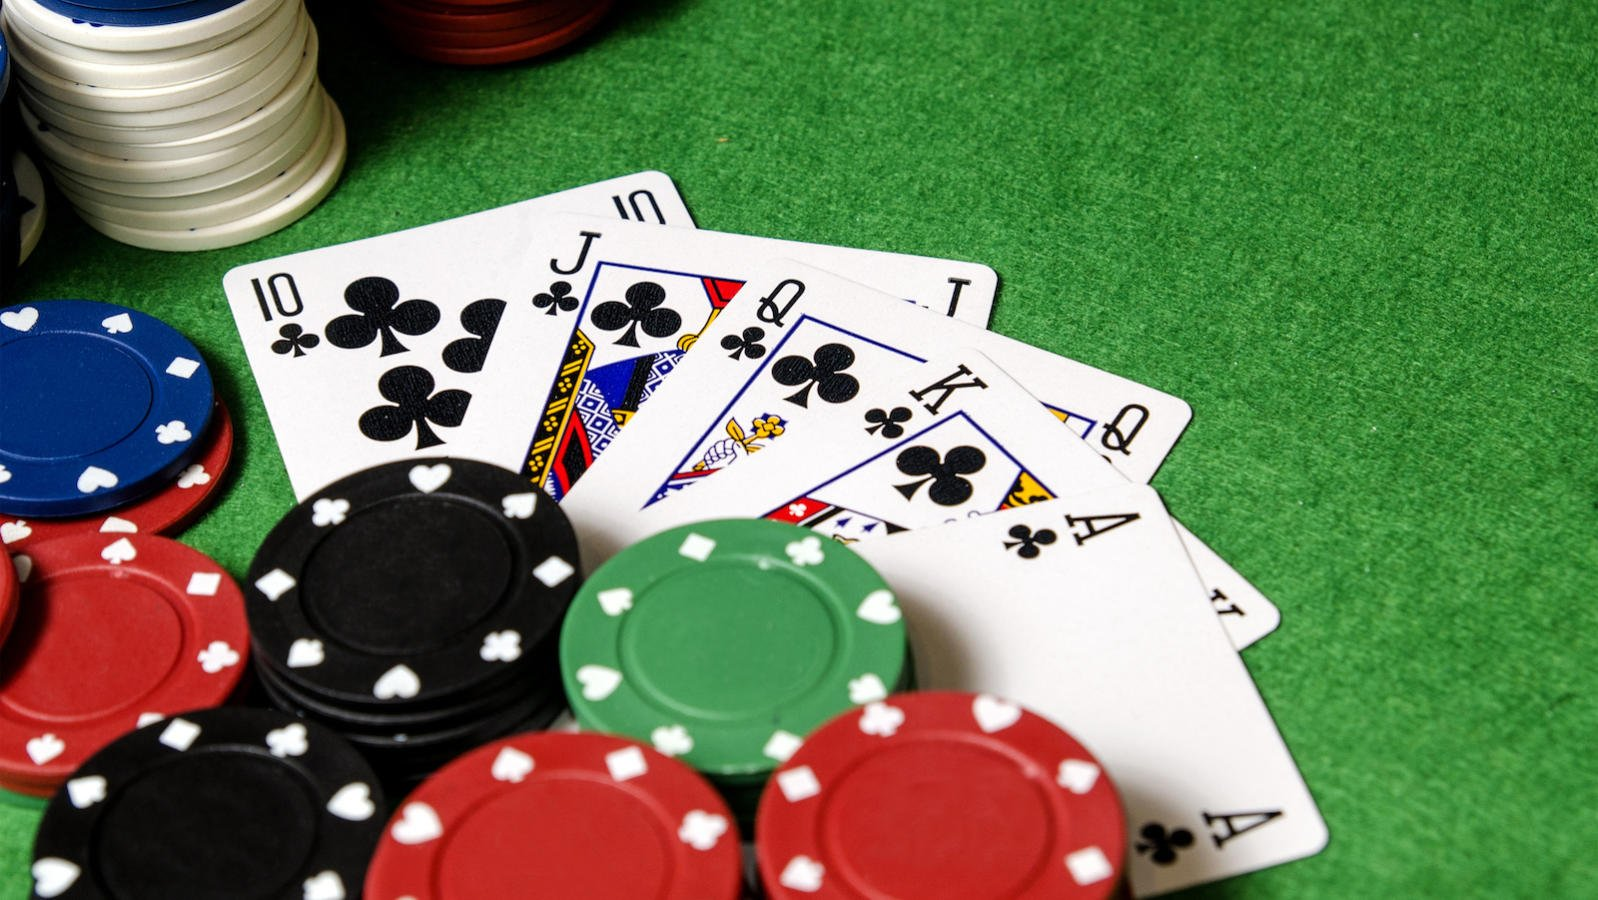 cards-poker-gambling-casino-gamble-1598x900.jpg